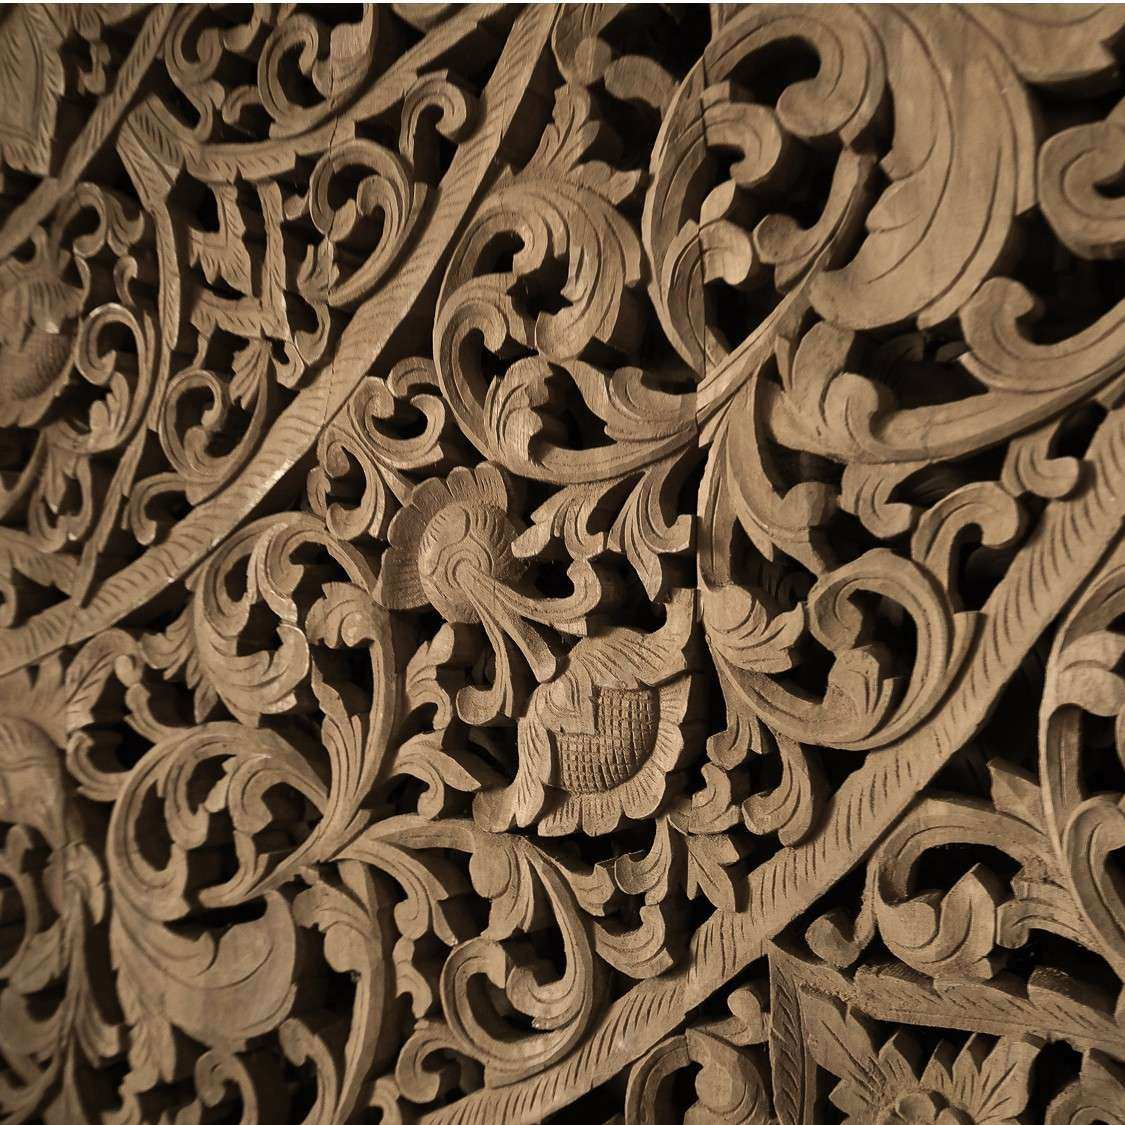 Grand Carved Wooden Wall Art or Ceiling Panel Siam